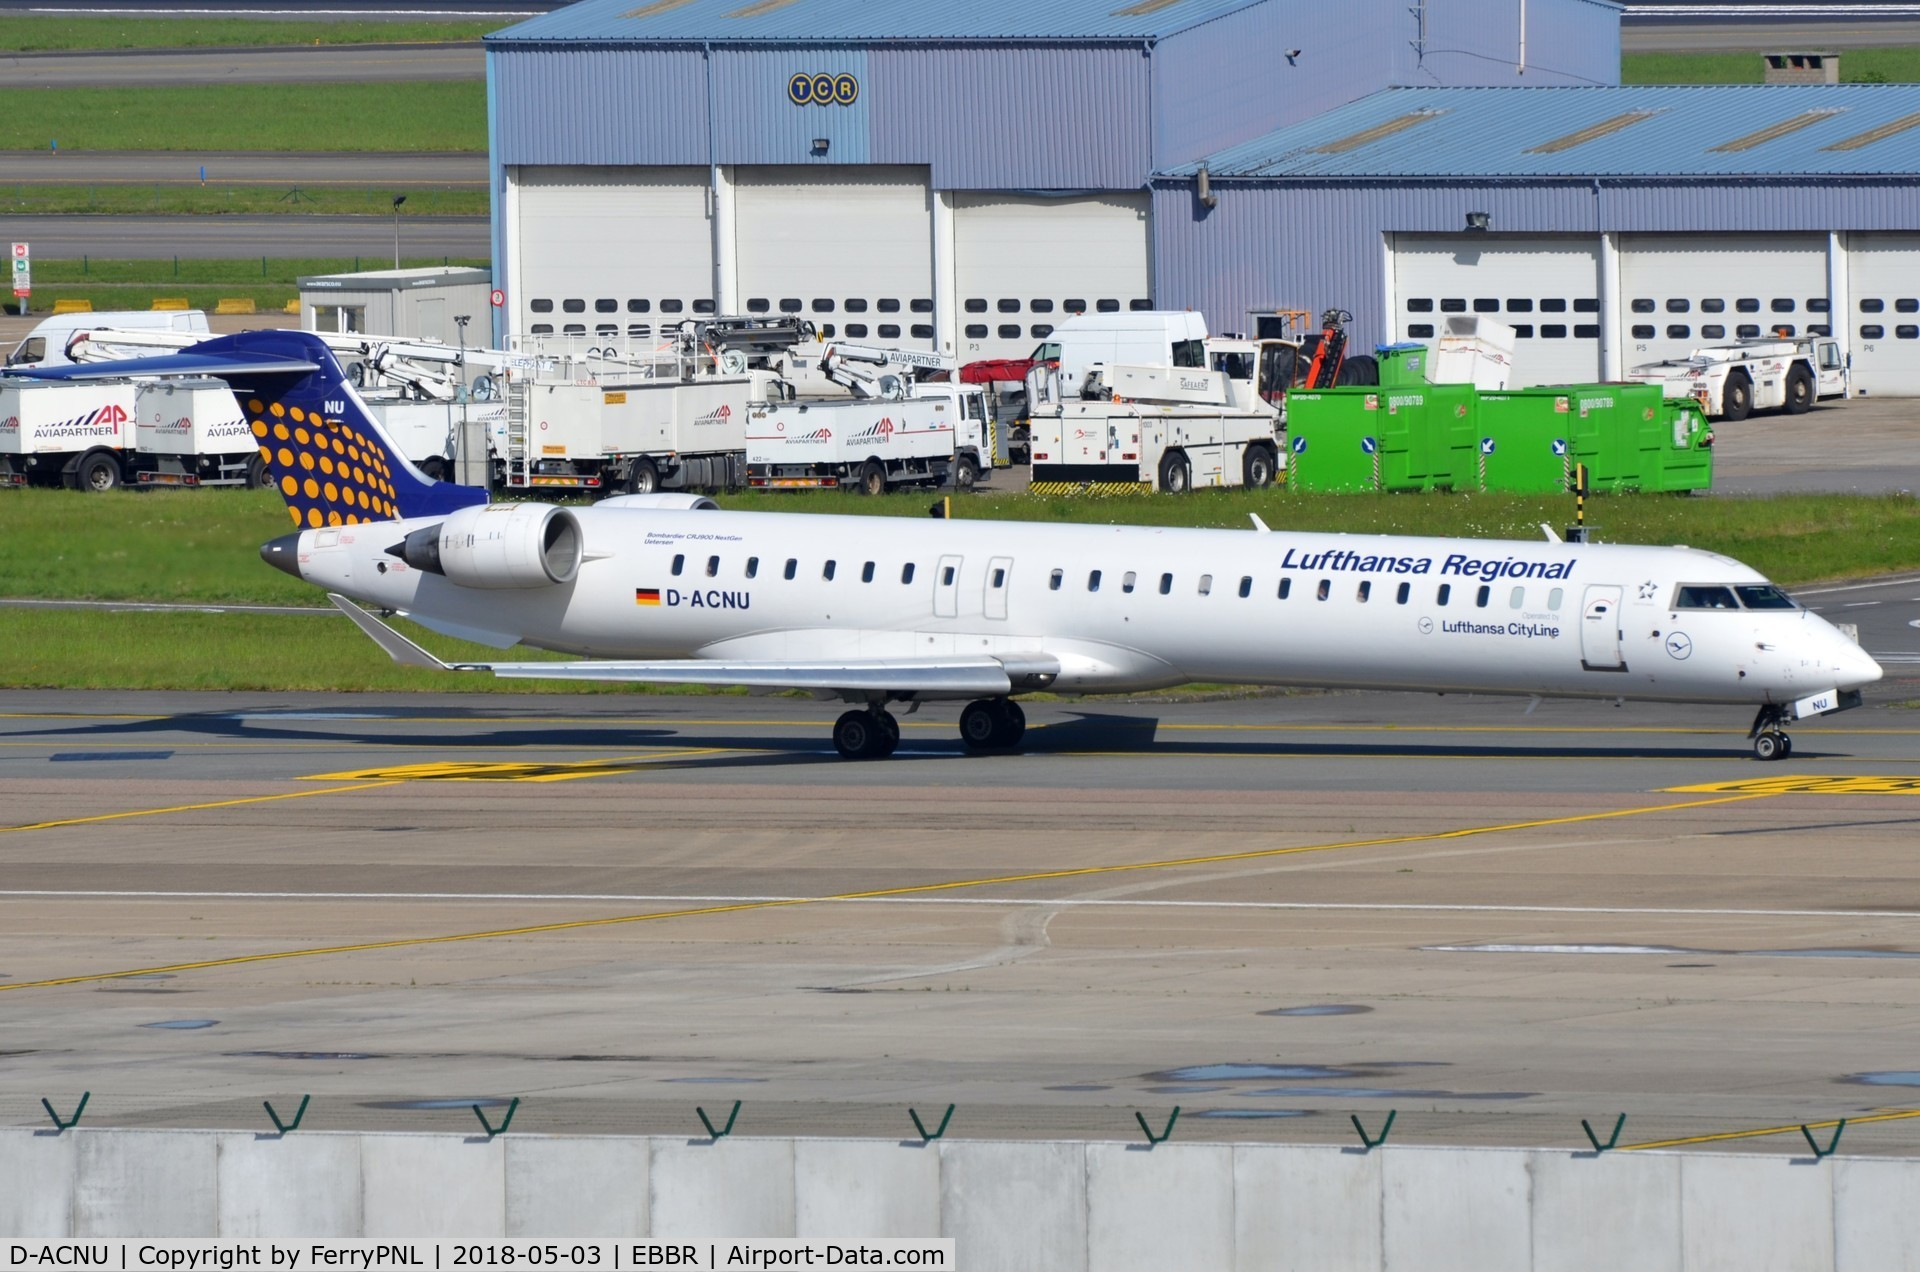 D-ACNU, 2011 Bombardier CRJ-900 NG (CL-600-2D24) C/N 15265, Lufthansa CL900 taxying out